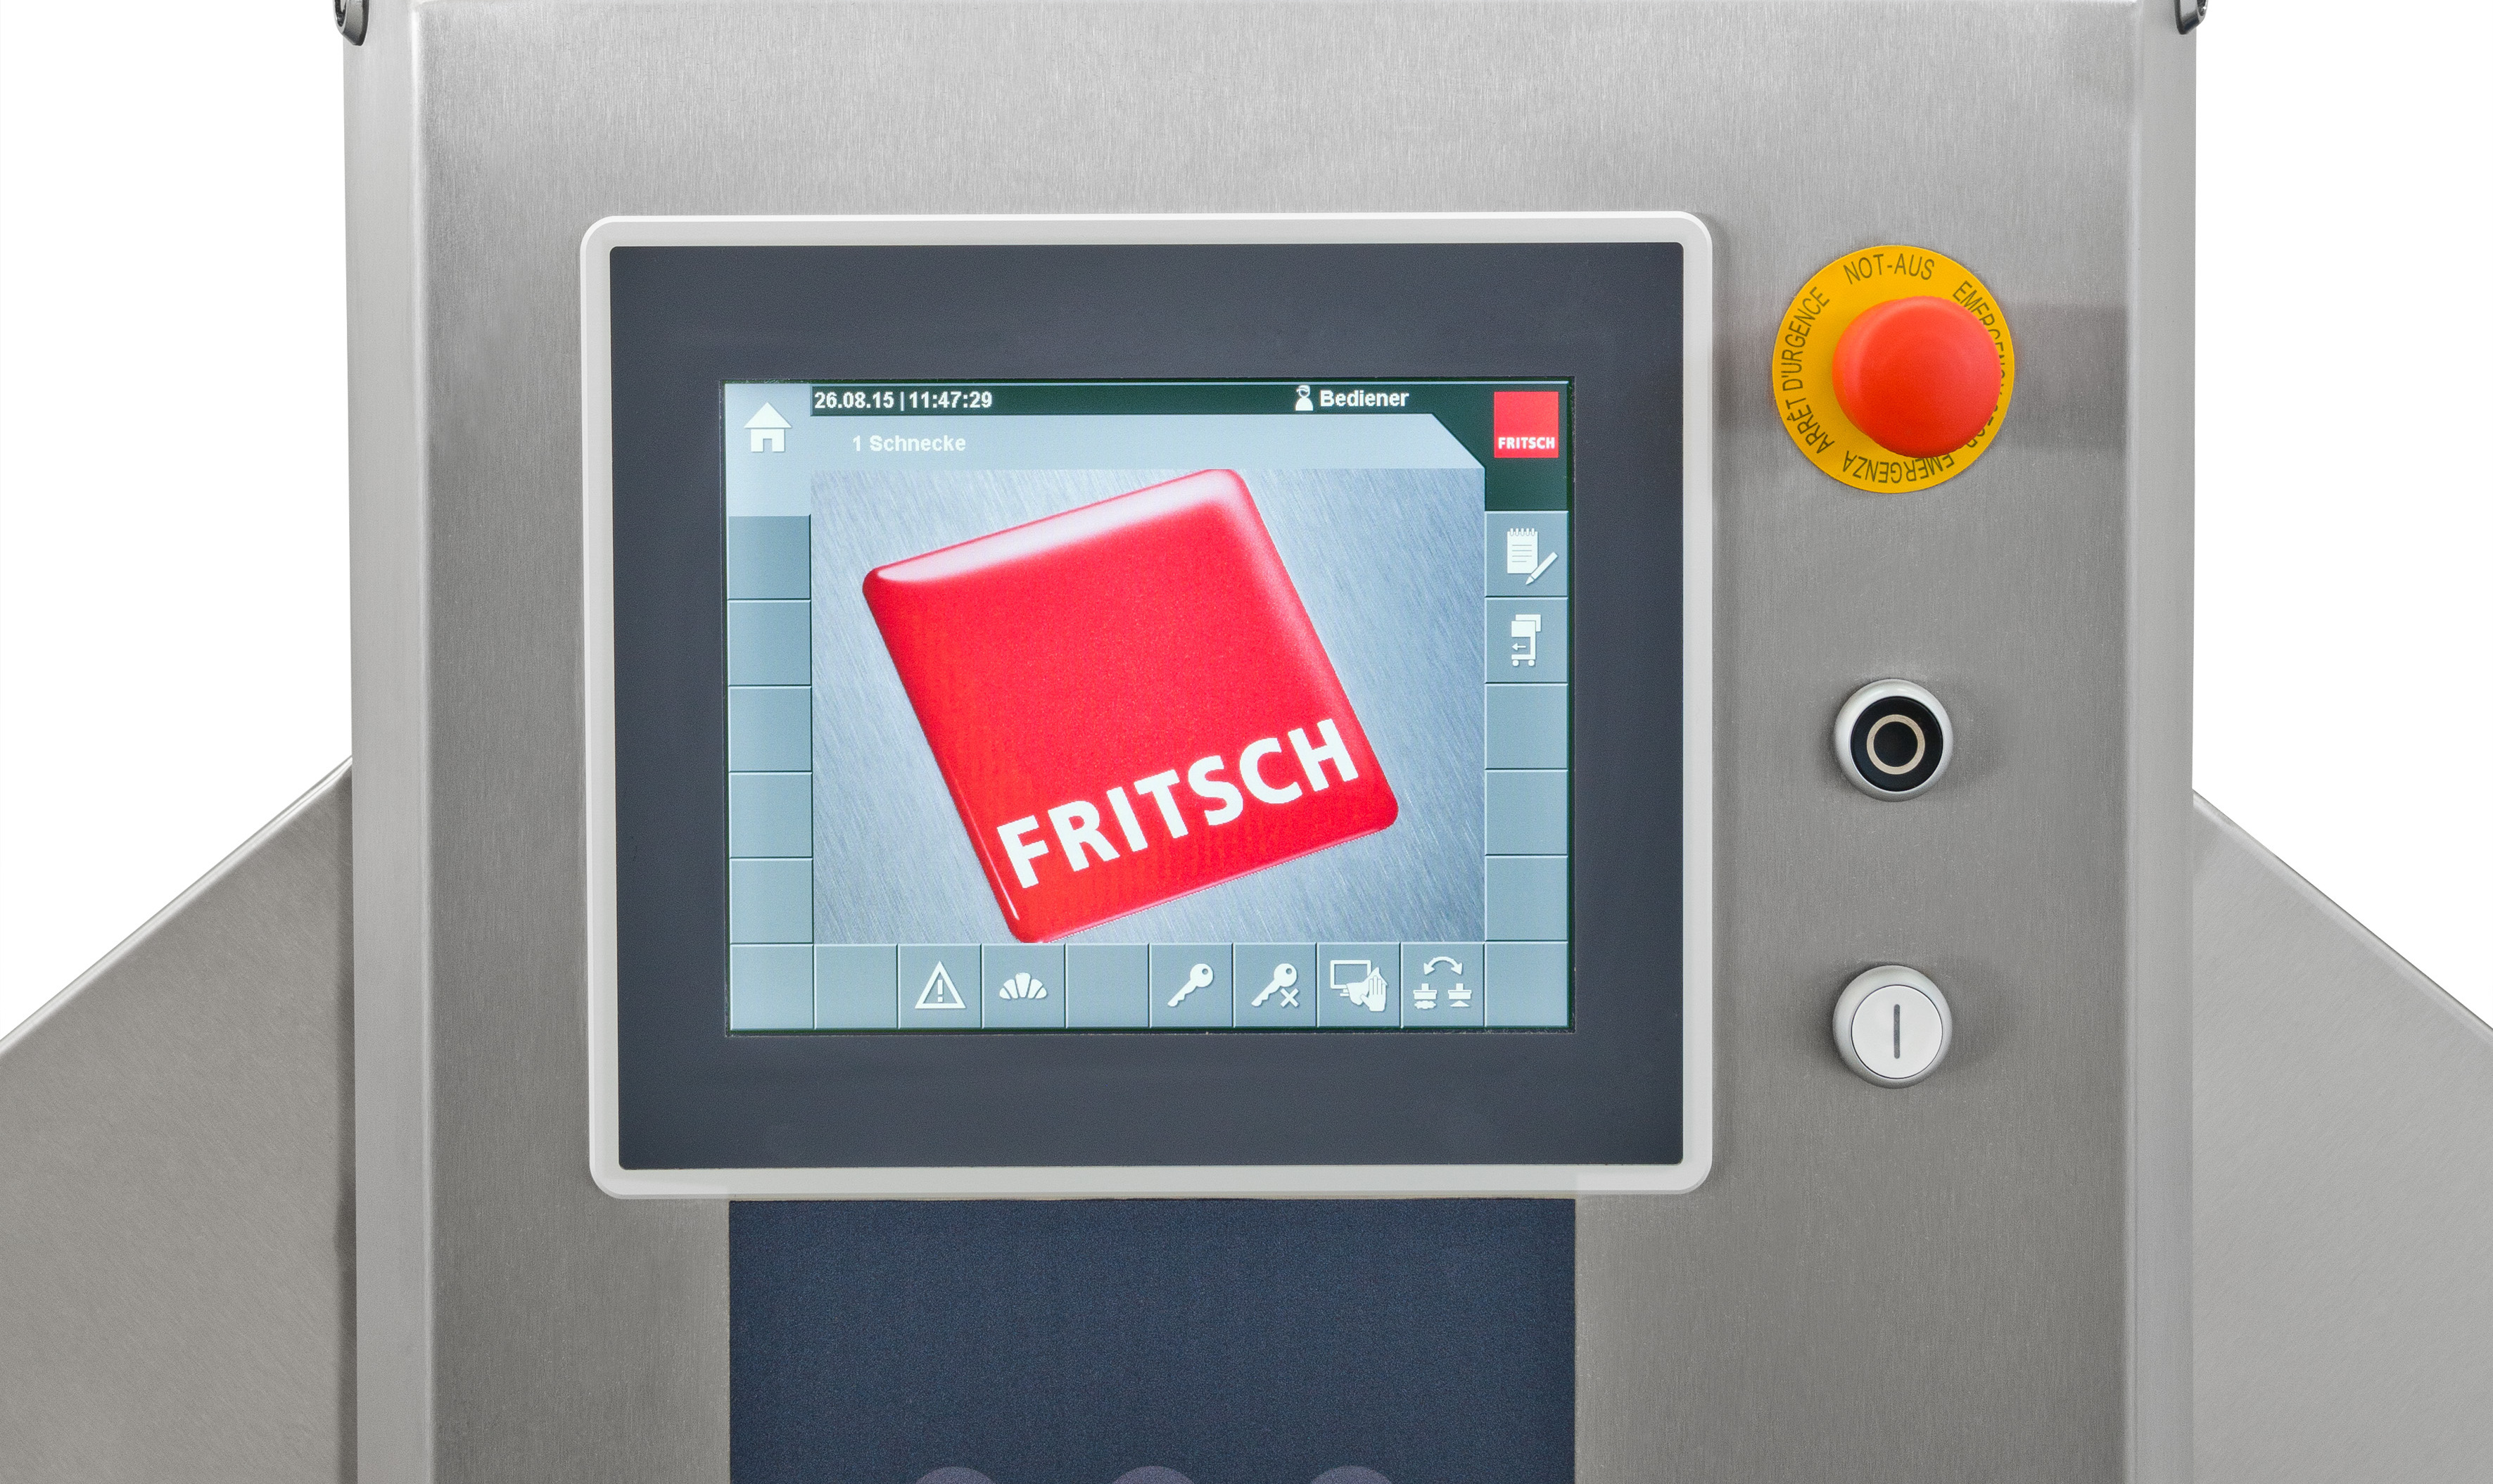 FRITSCH-bakery-machines-pastry-make-up-line-EASYLINE-control